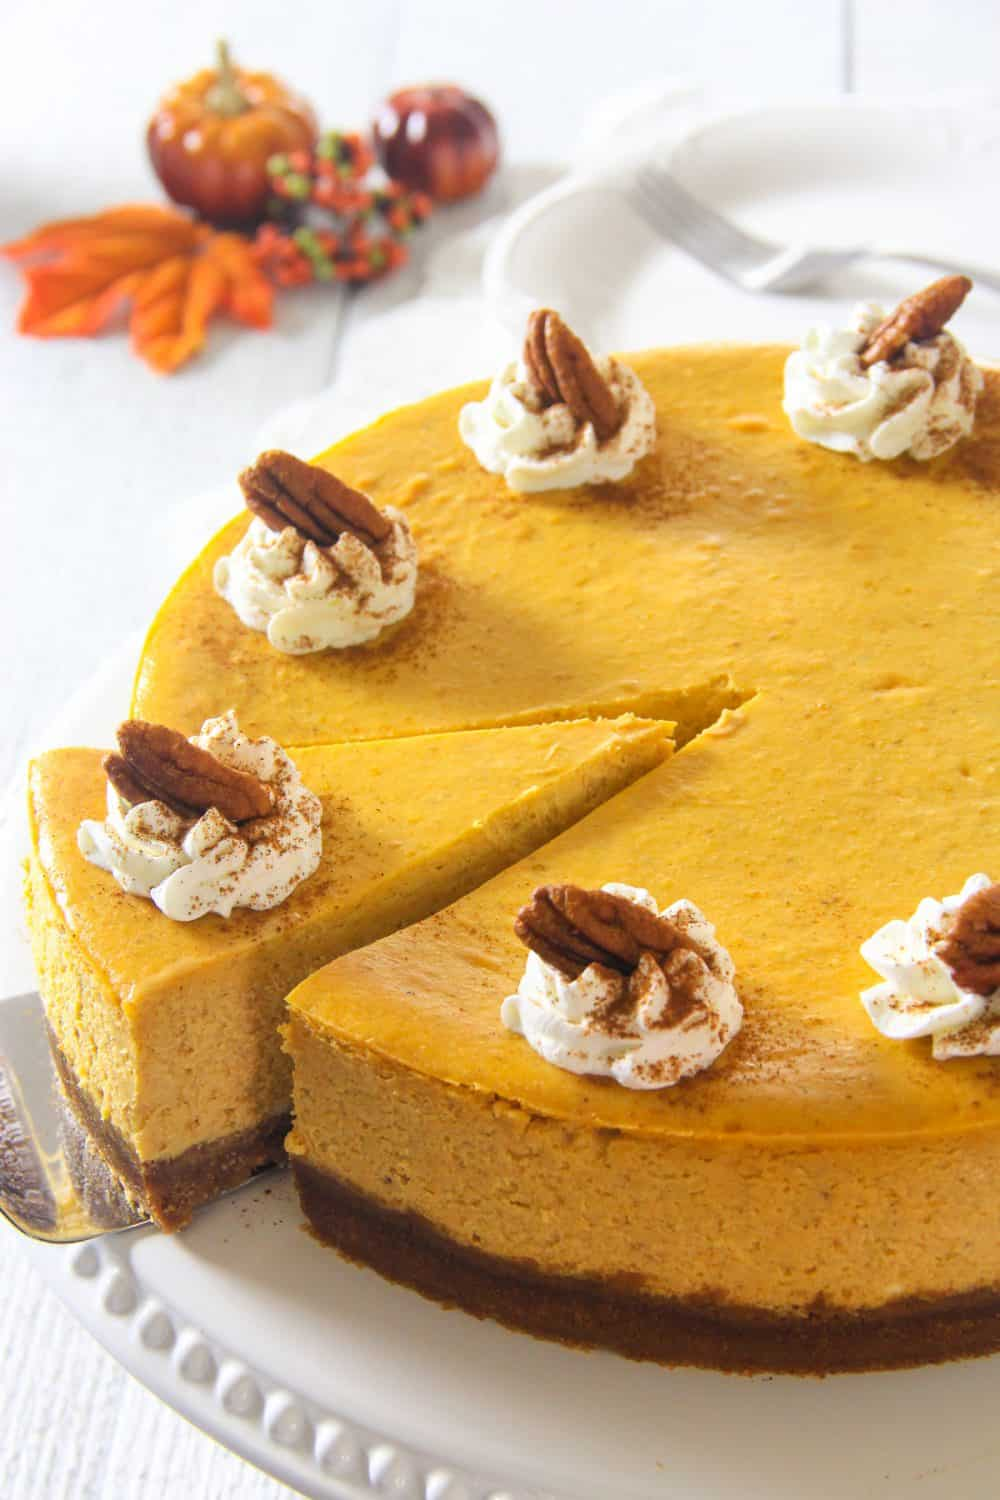 close up image of a homemade pumpkin cheesecake with whipped cream and pecan on top